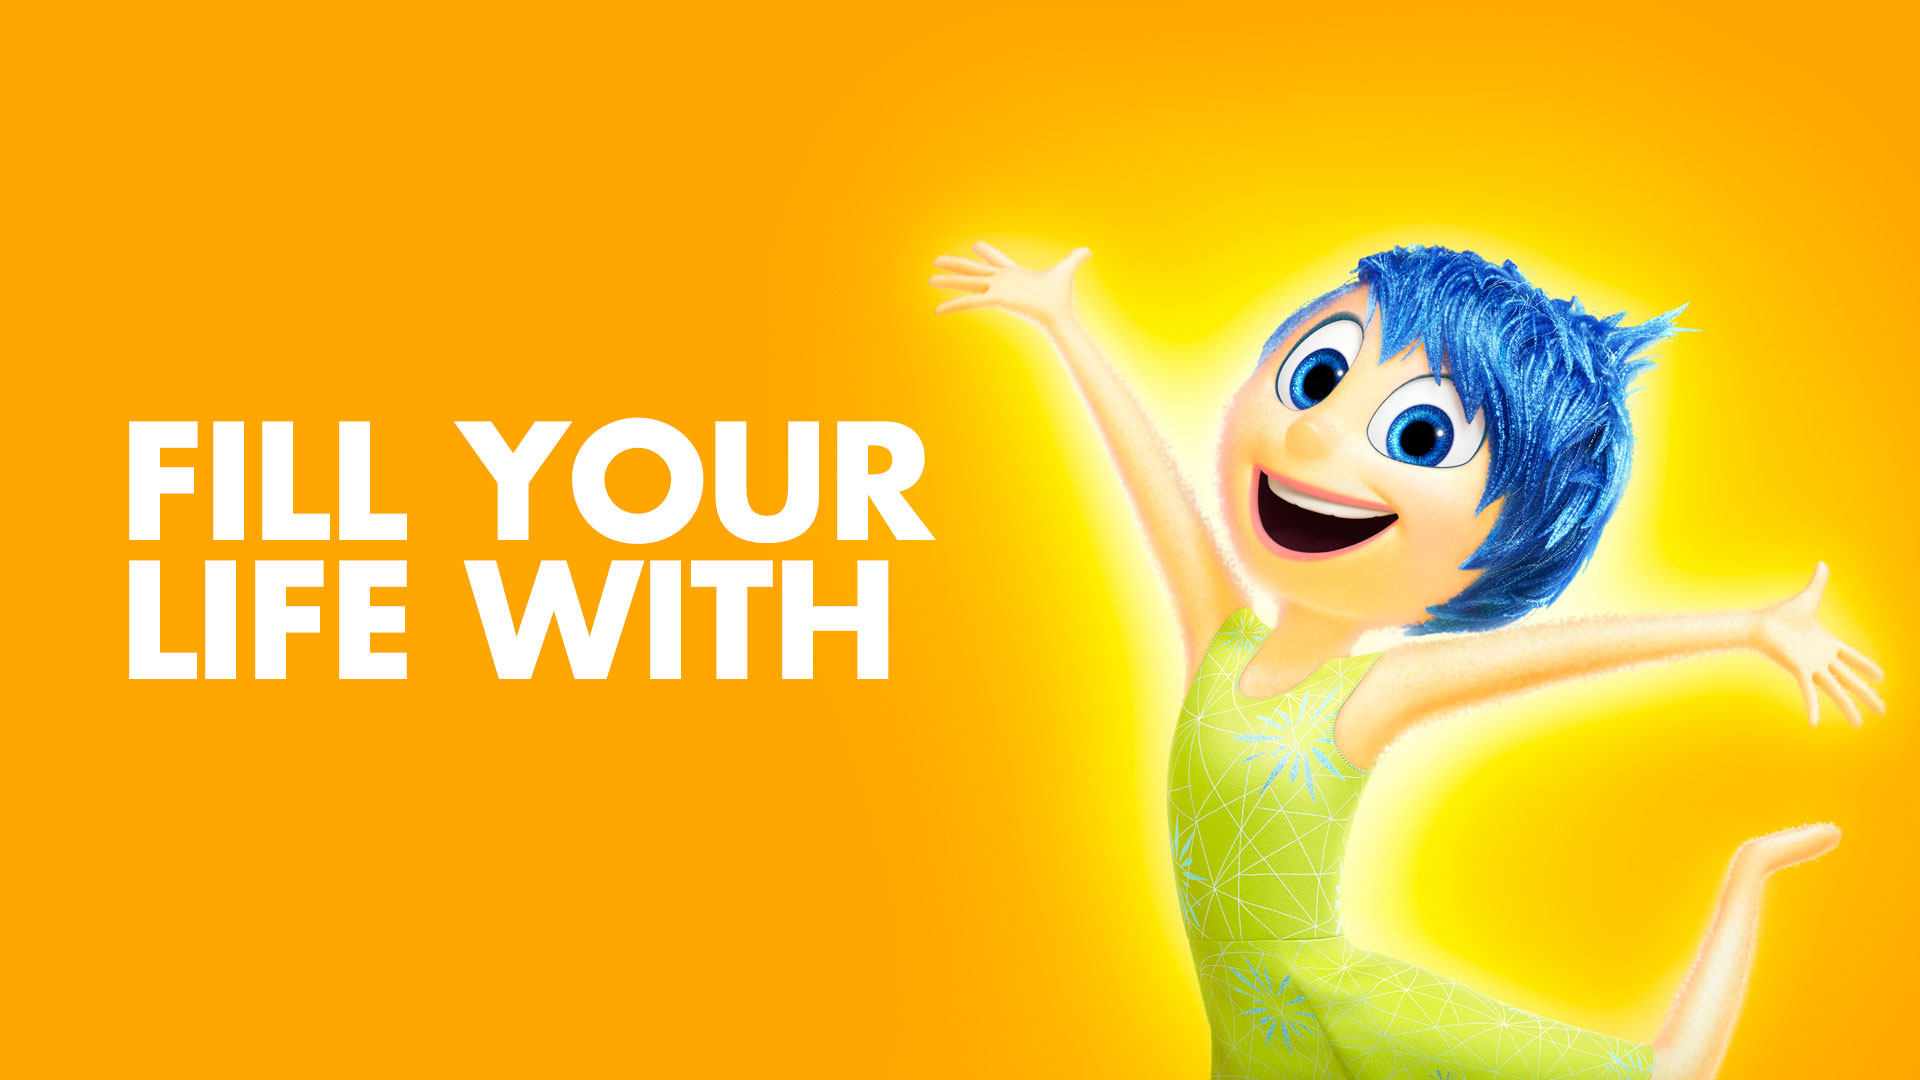 48 Sadness Inside Out Hd Wallpaper On Wallpapersafari